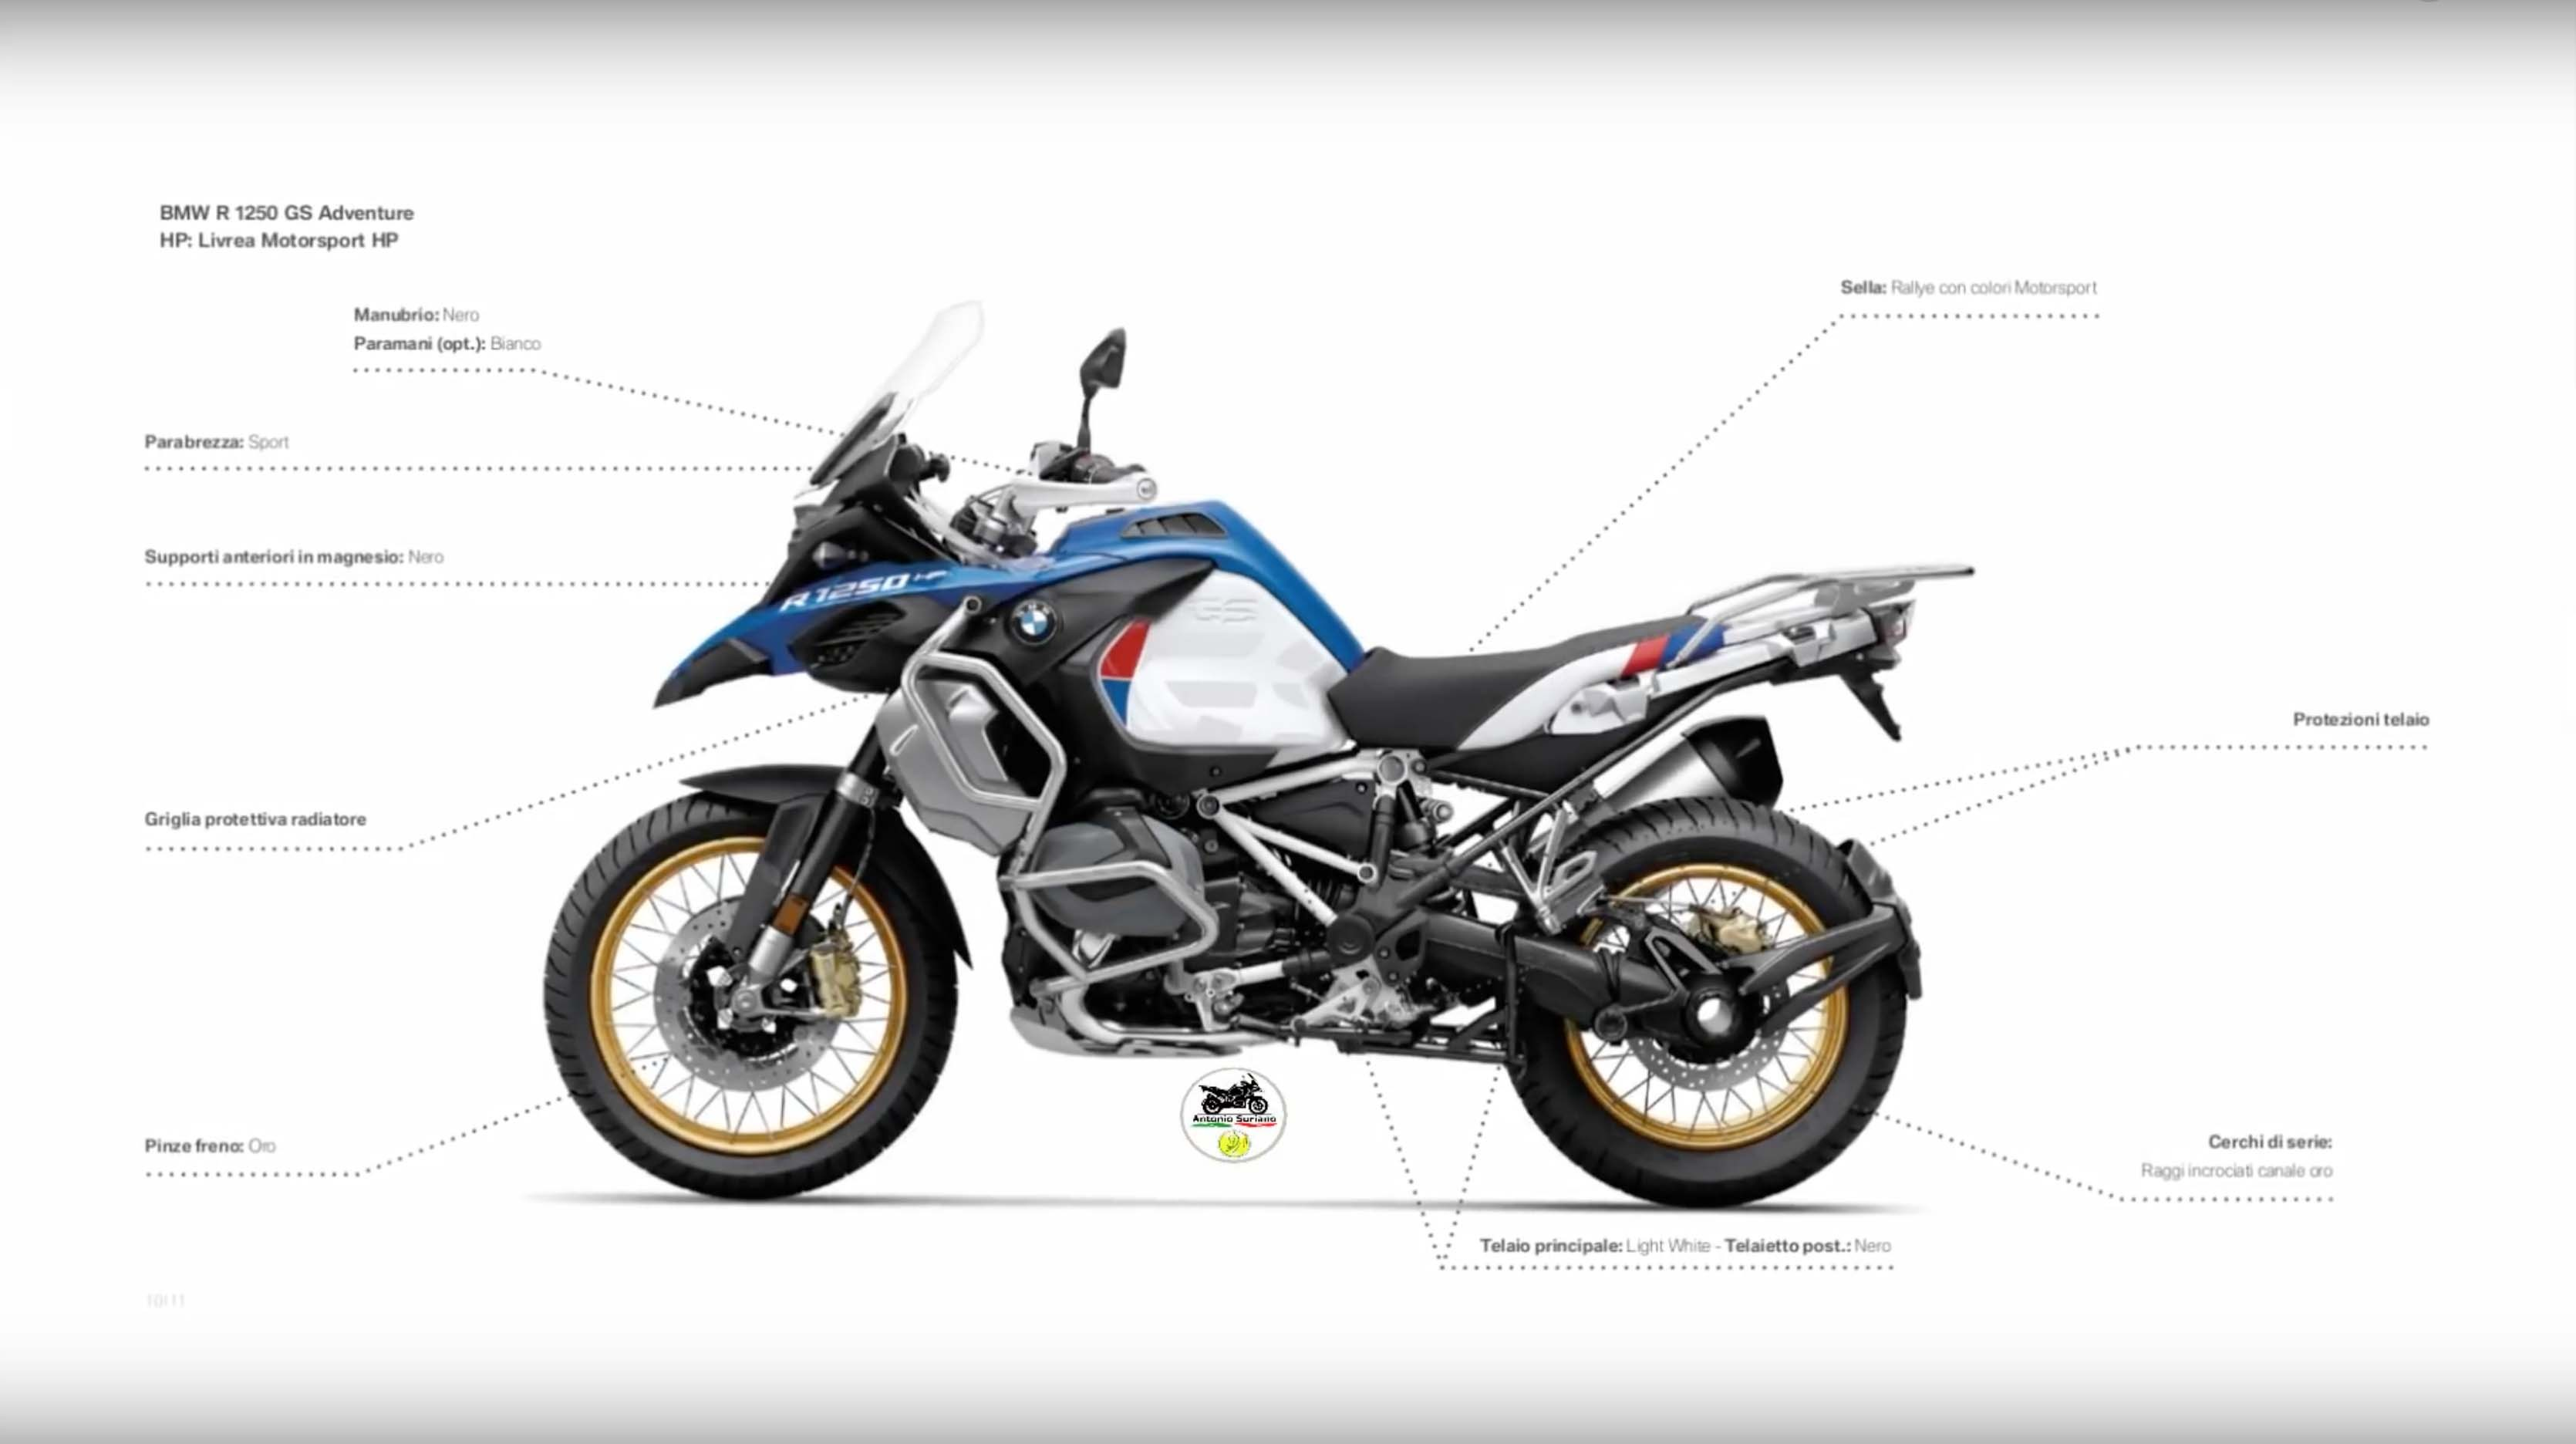 2019 BMW R1250GS Adventure leak 01